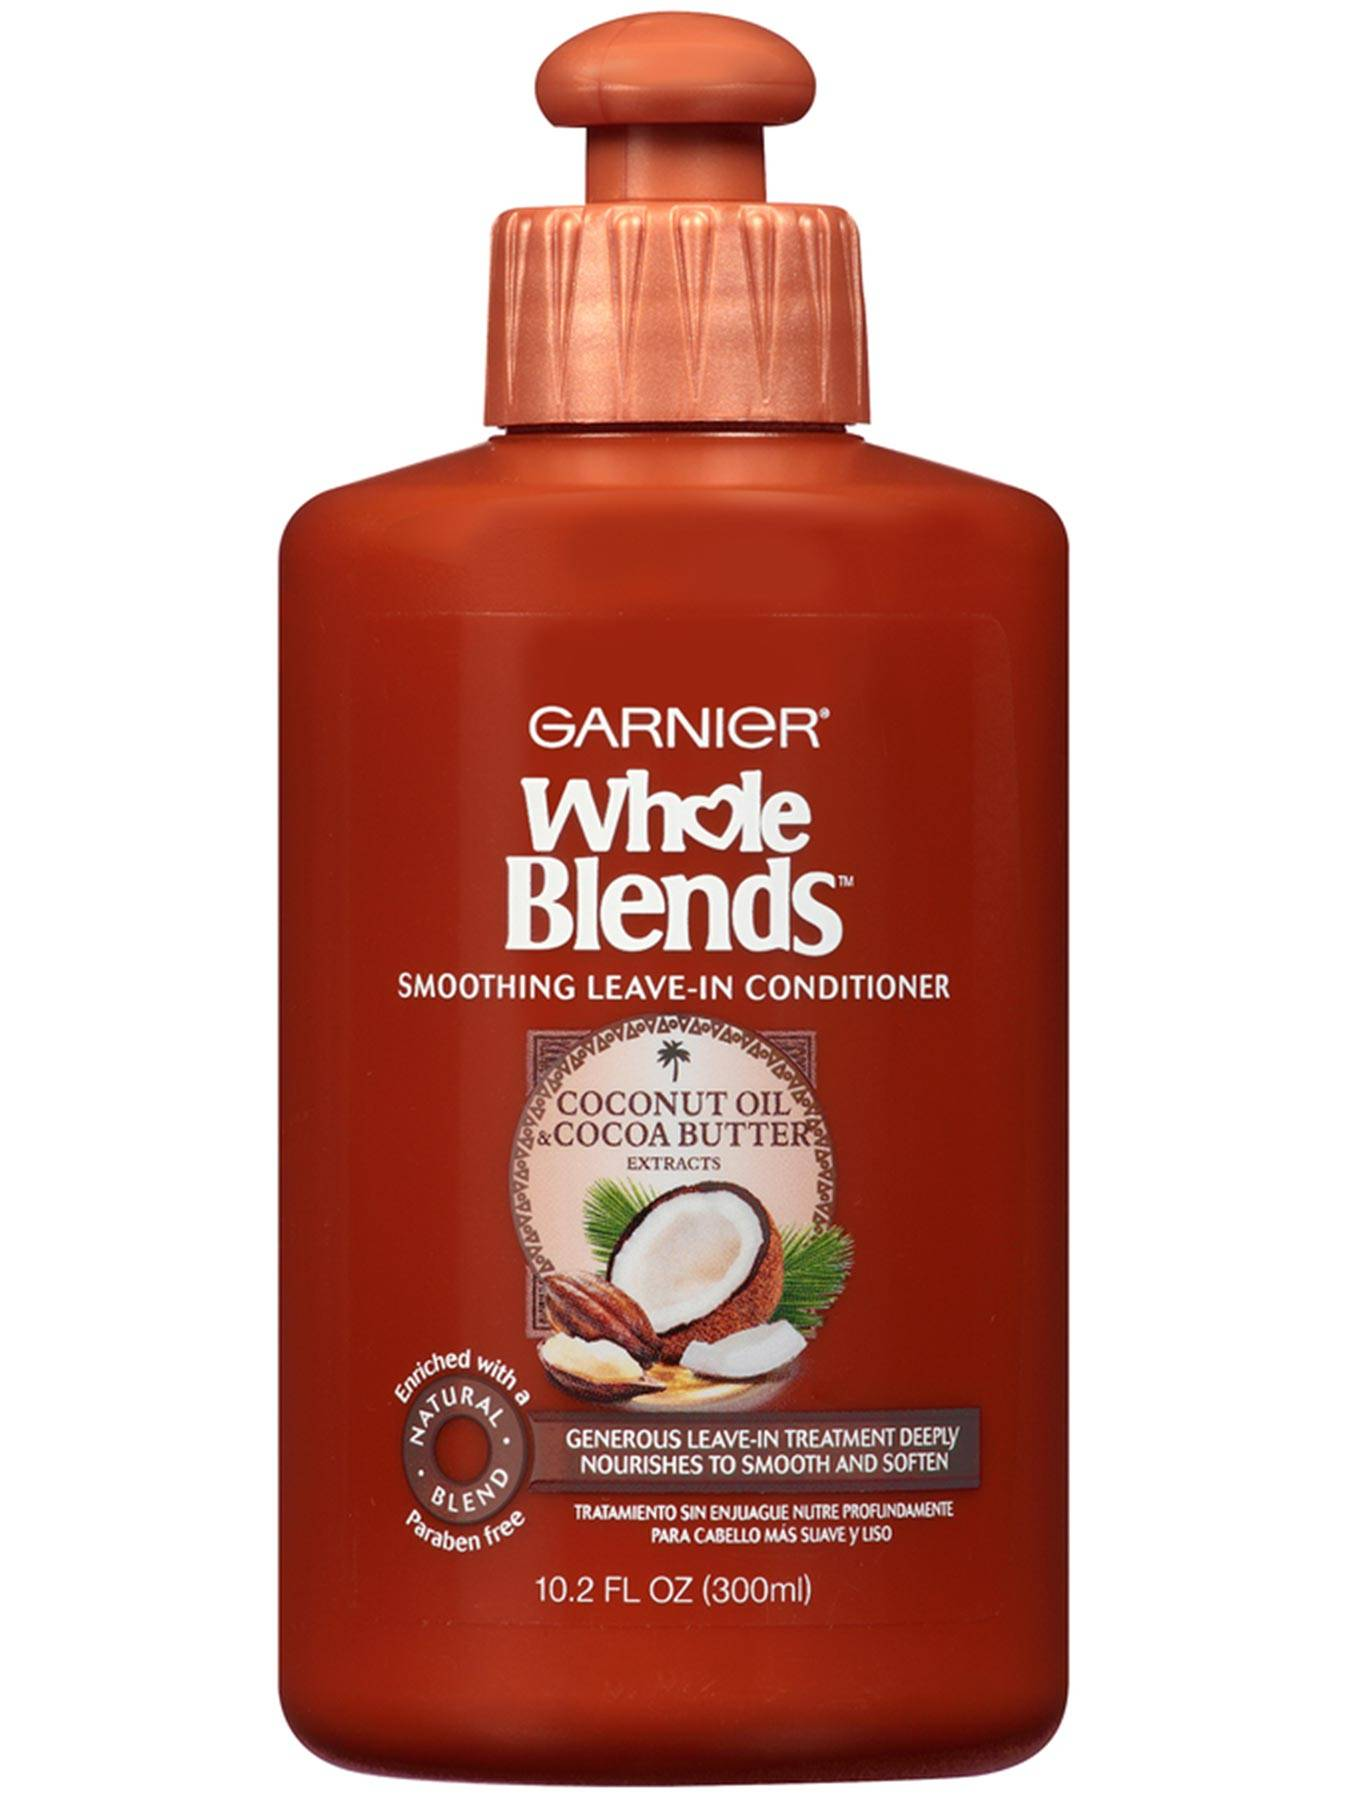 Whole Blends - Smoothing Leave-In Conditioner with Coconut Oil & Cocoa Butter extracts